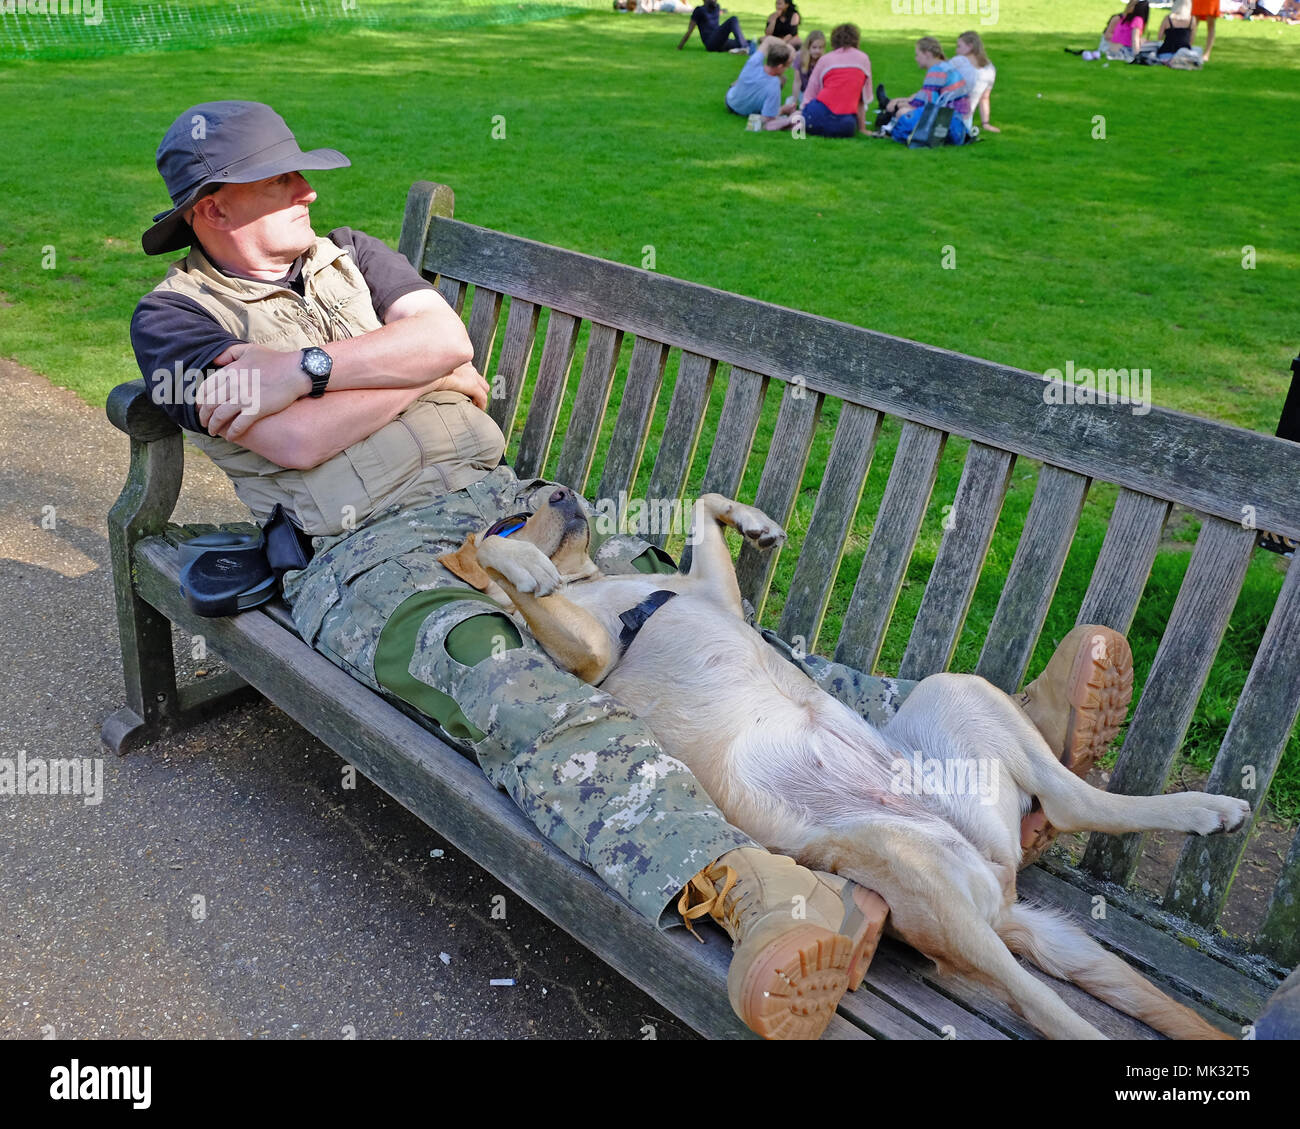 London Weather. St. James Park, London, UK, 6th May, 2018.  Dog with sunglasses on enjoys a nap in the park along with his human during the Heat Wave on this Bank Holiday Weekend. Credit: Judi Saunders/Alamy Live News - Stock Image